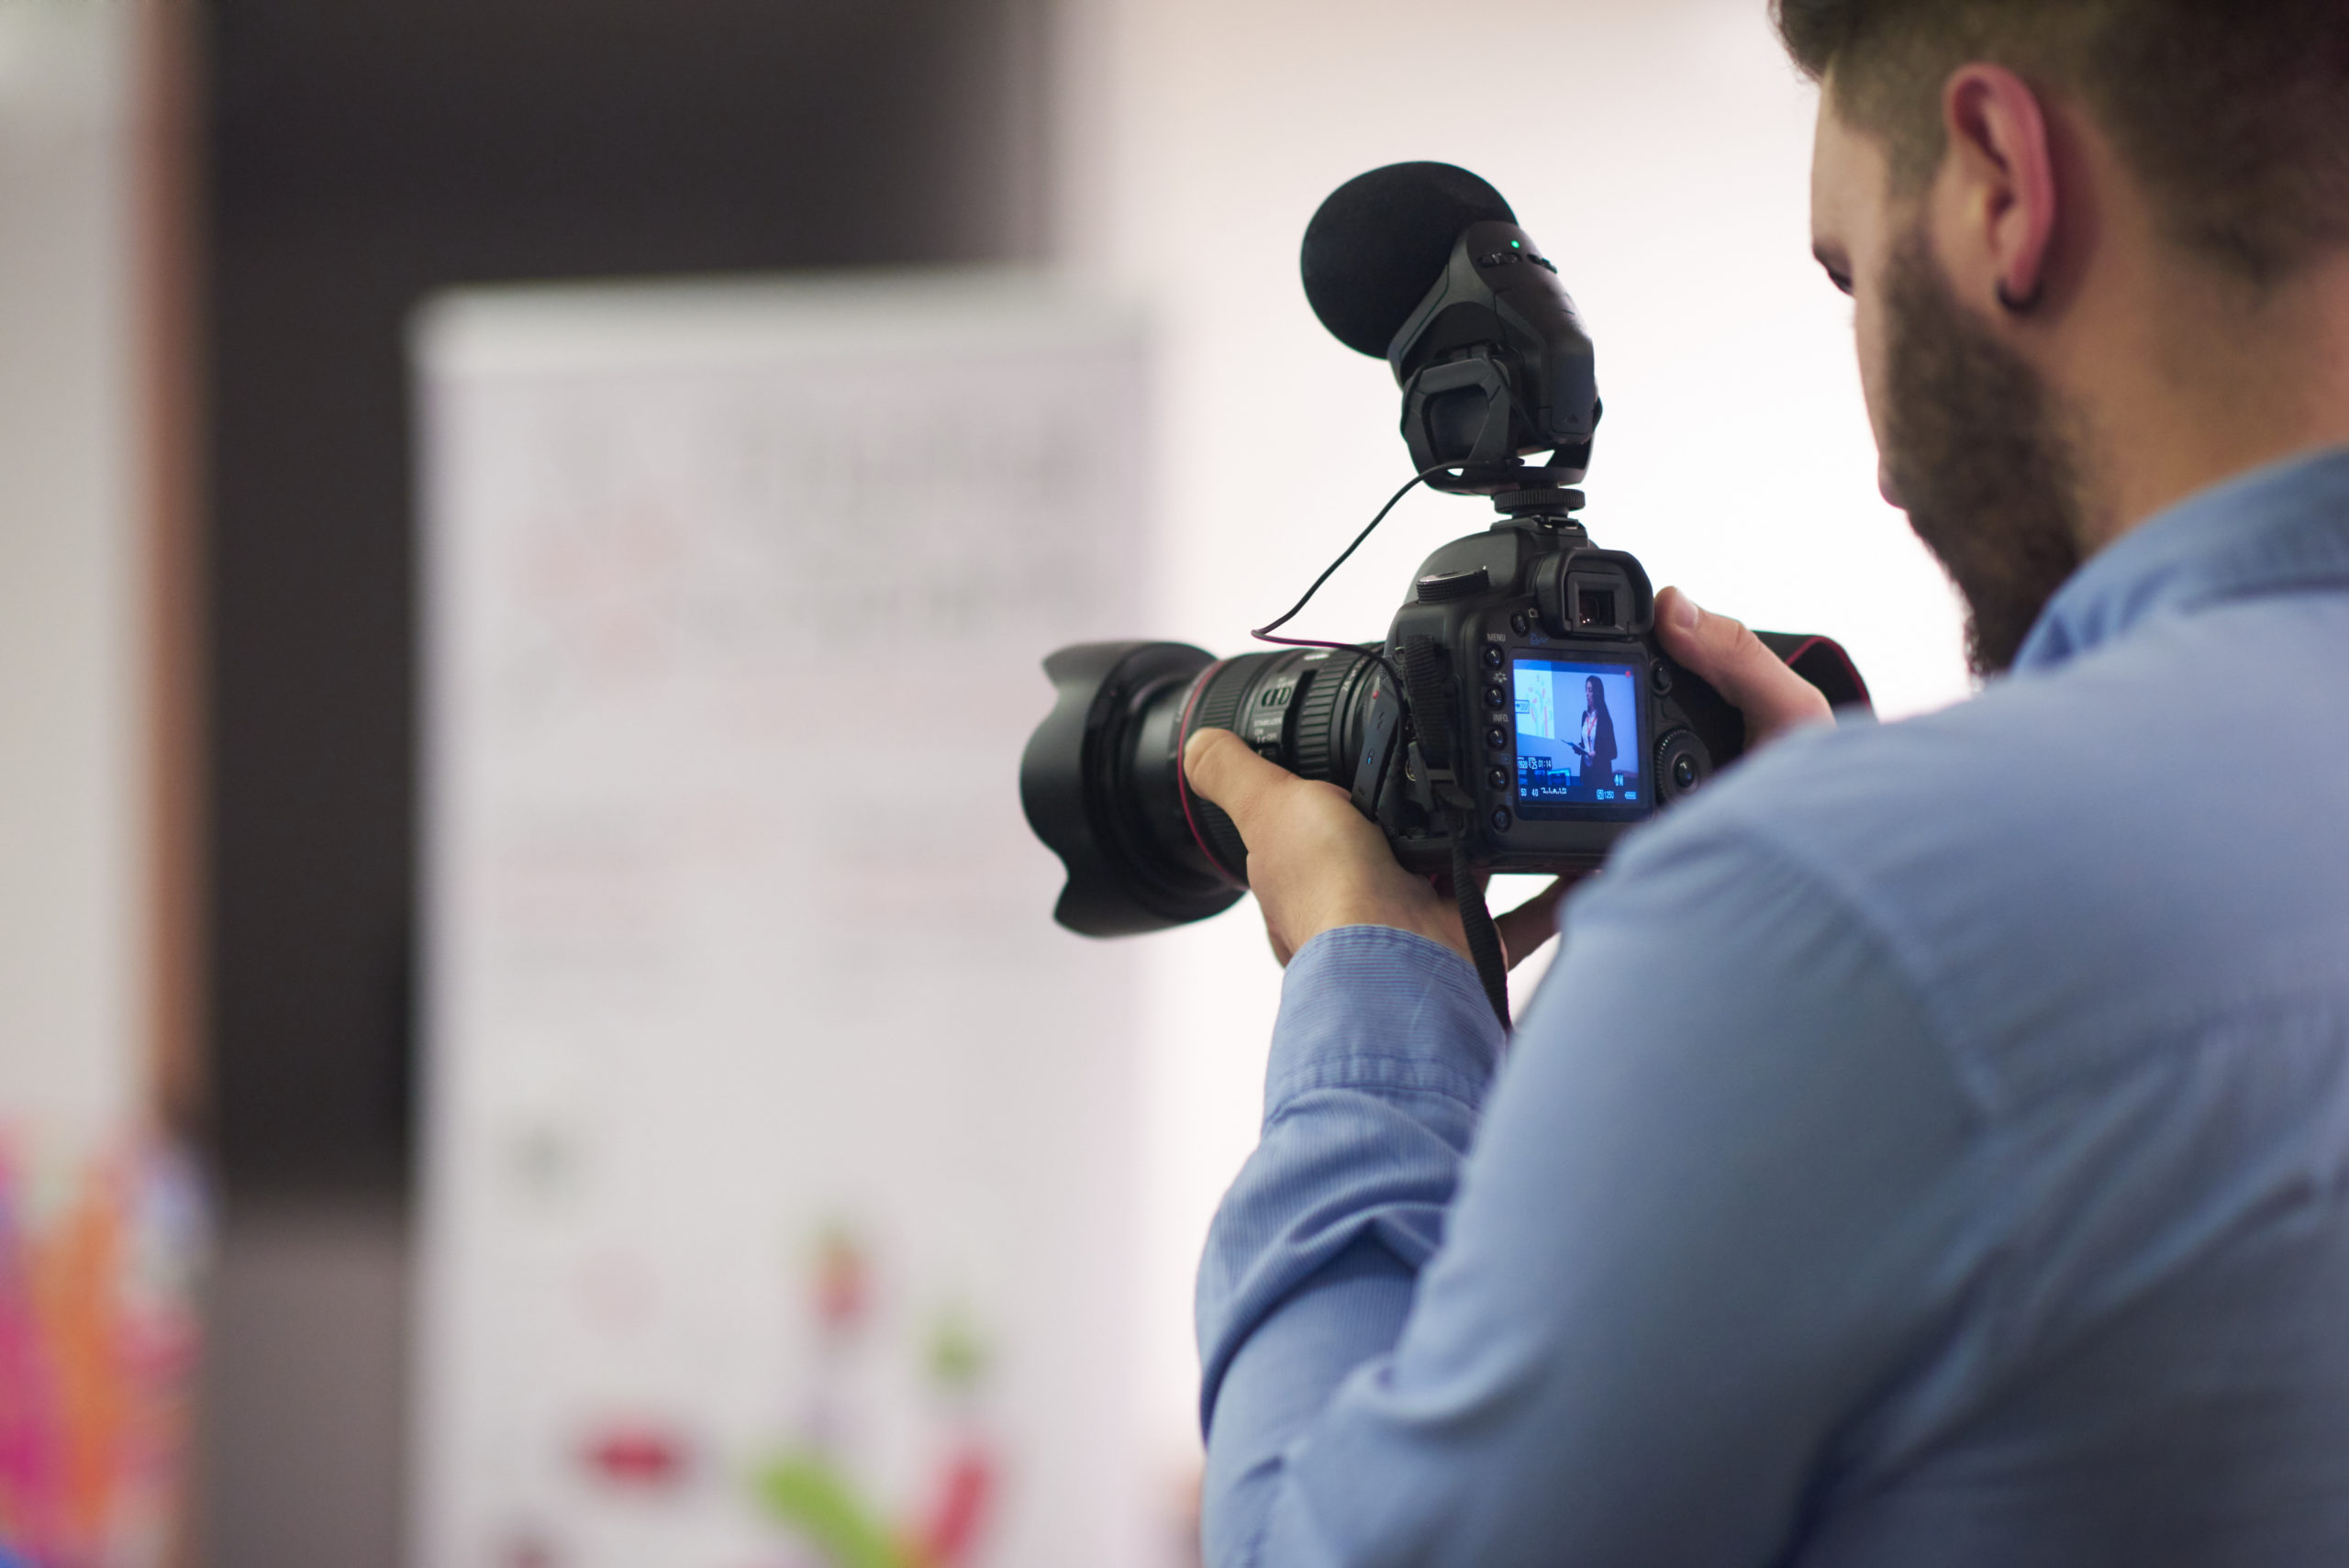 5 Tips to Help Improve Your Video Marketing in 2020